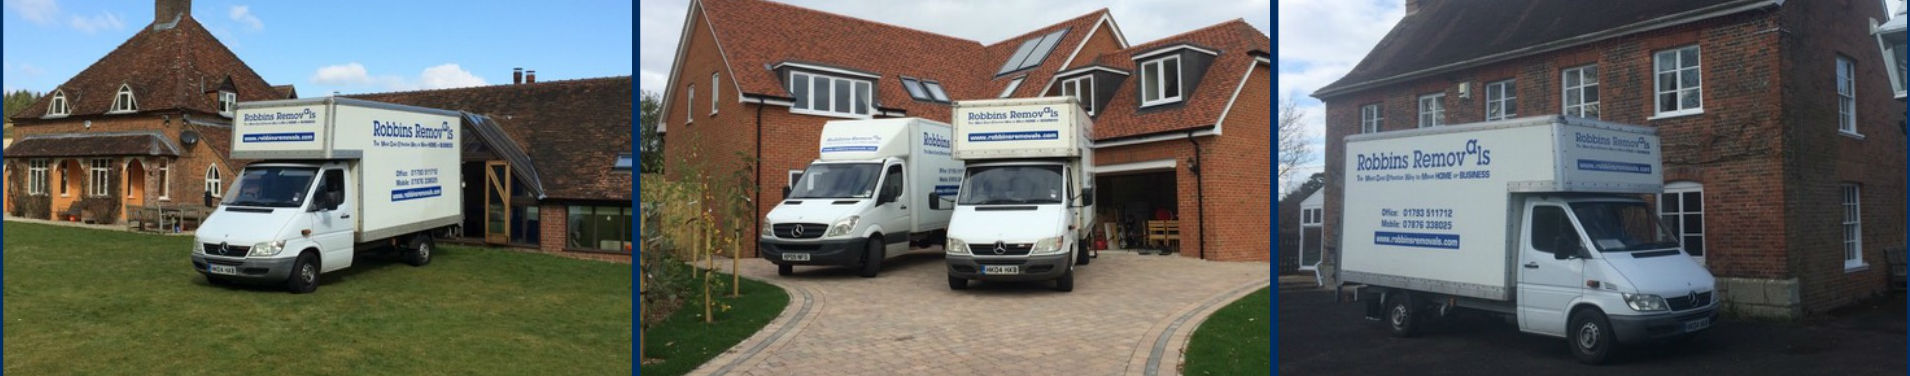 Robbins Removals Services in Swindon